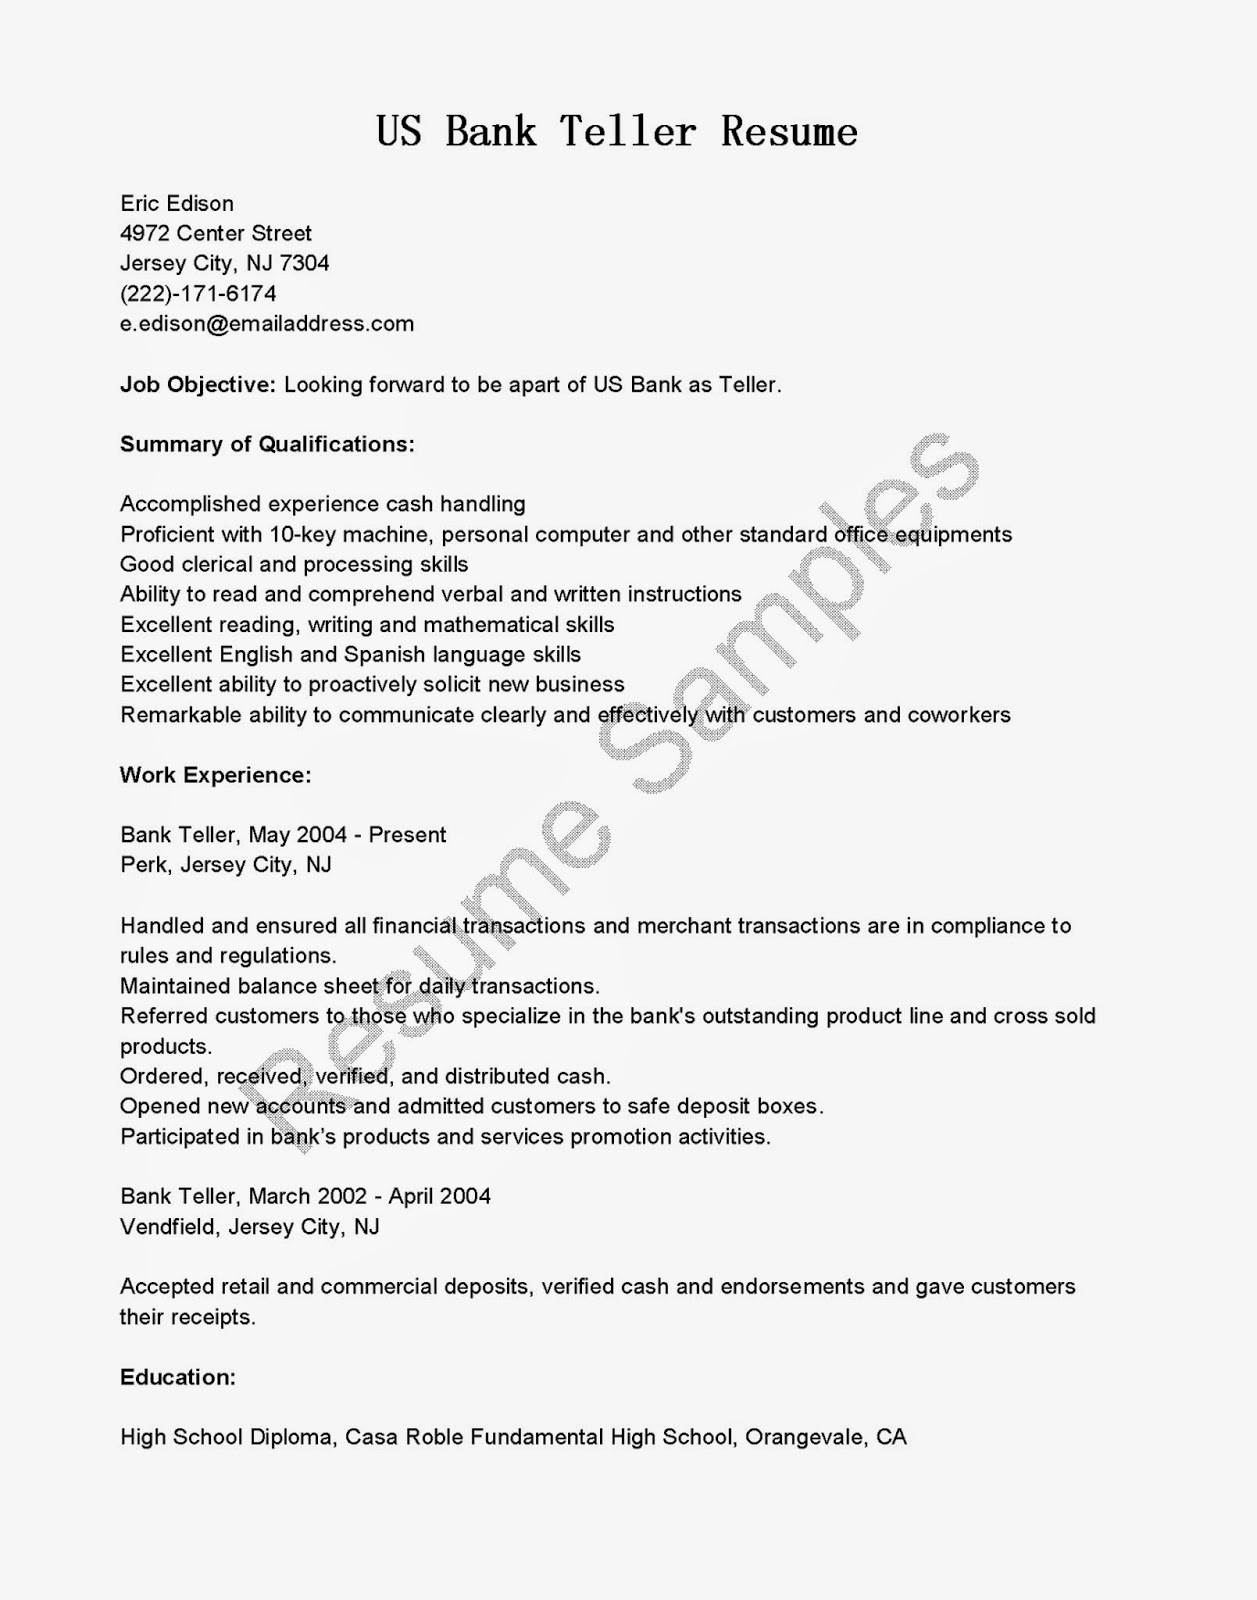 Resume Cover Letter Bank Teller No Experience